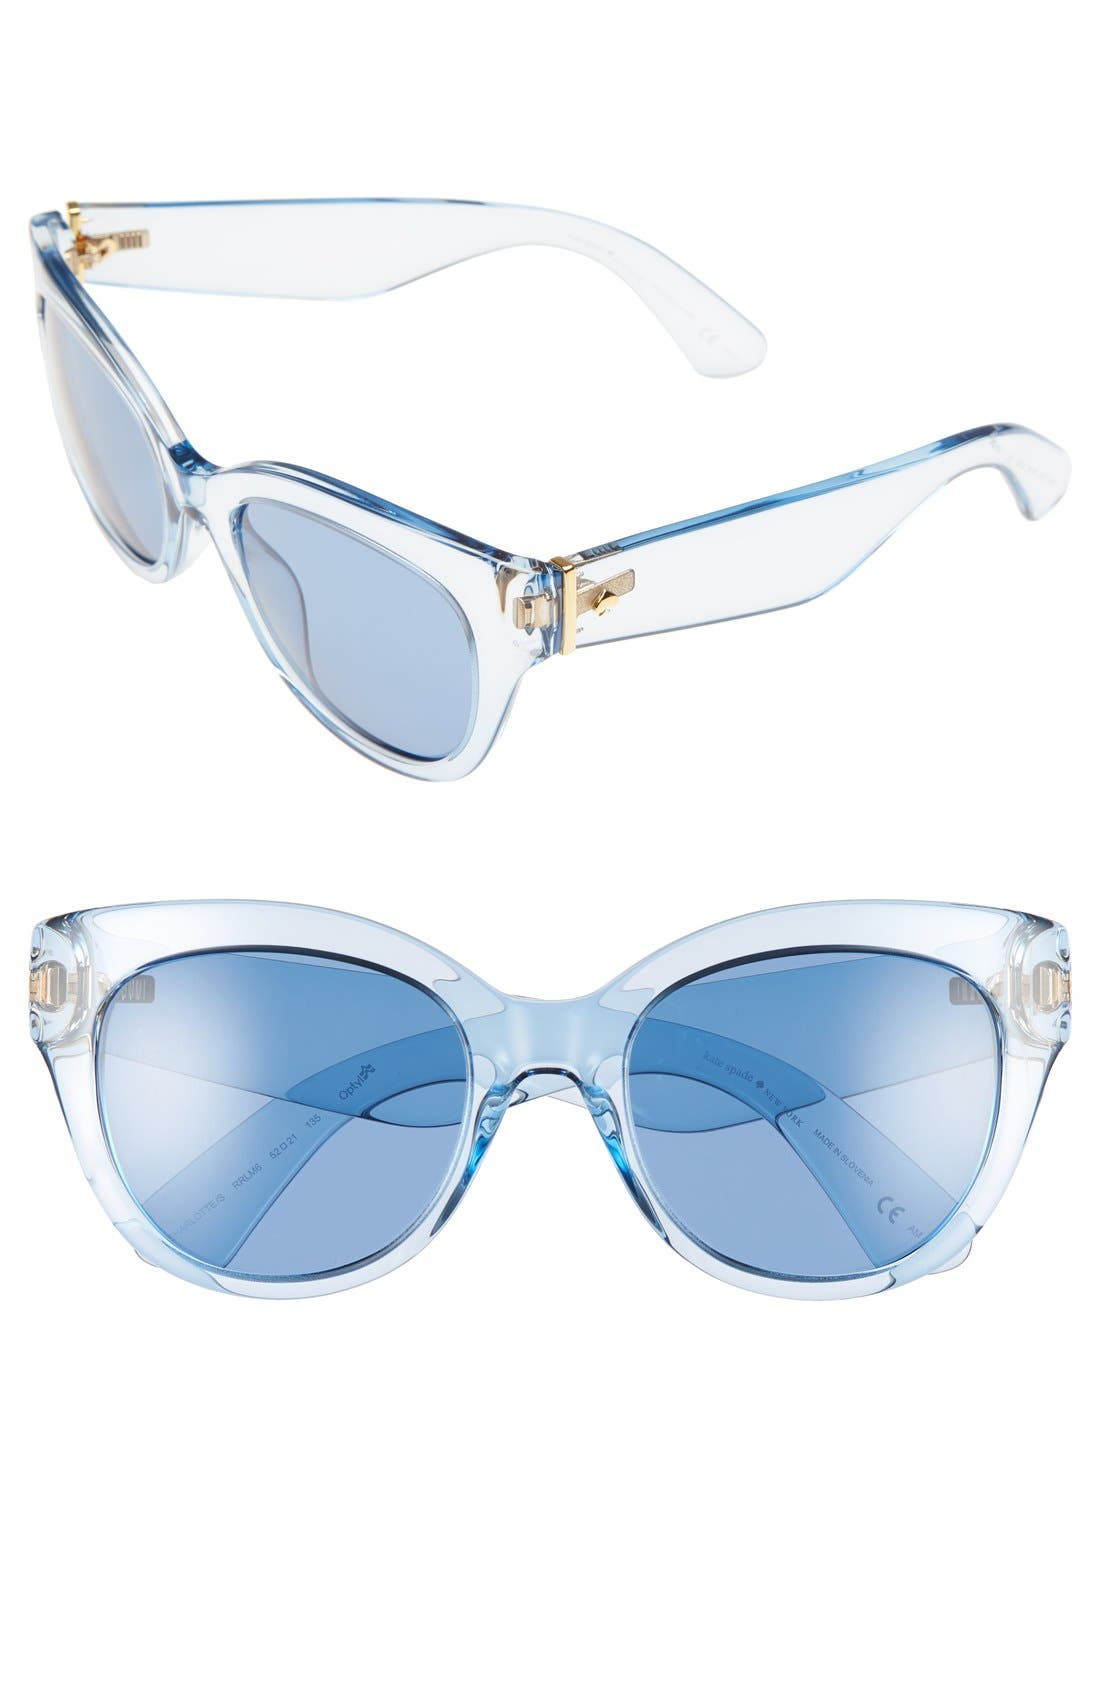 Alternate Image 1 Selected - kate spade new york 'sharlots' 52mm sunglasses